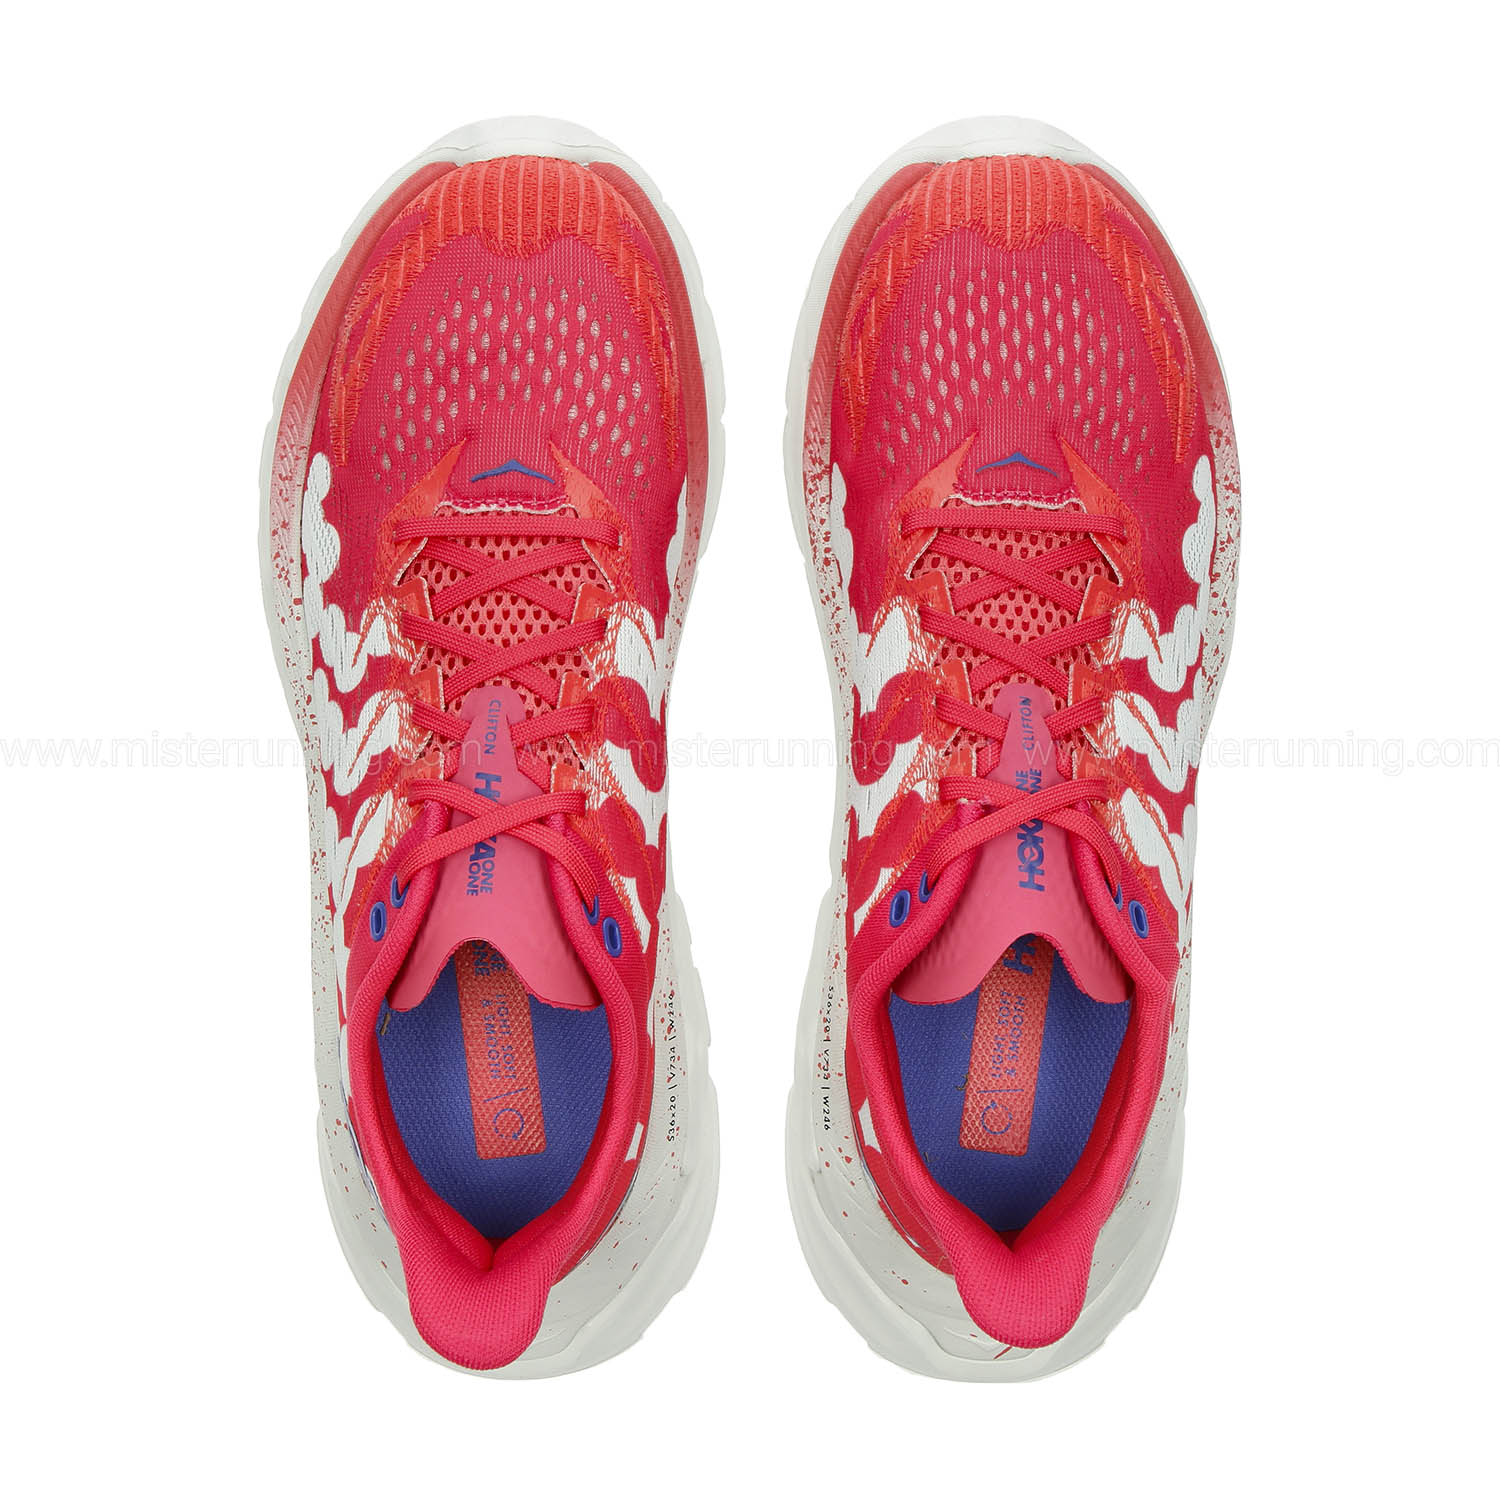 Hoka One One Clifton Edge Geometric - Paradise Pink/Blue Flower